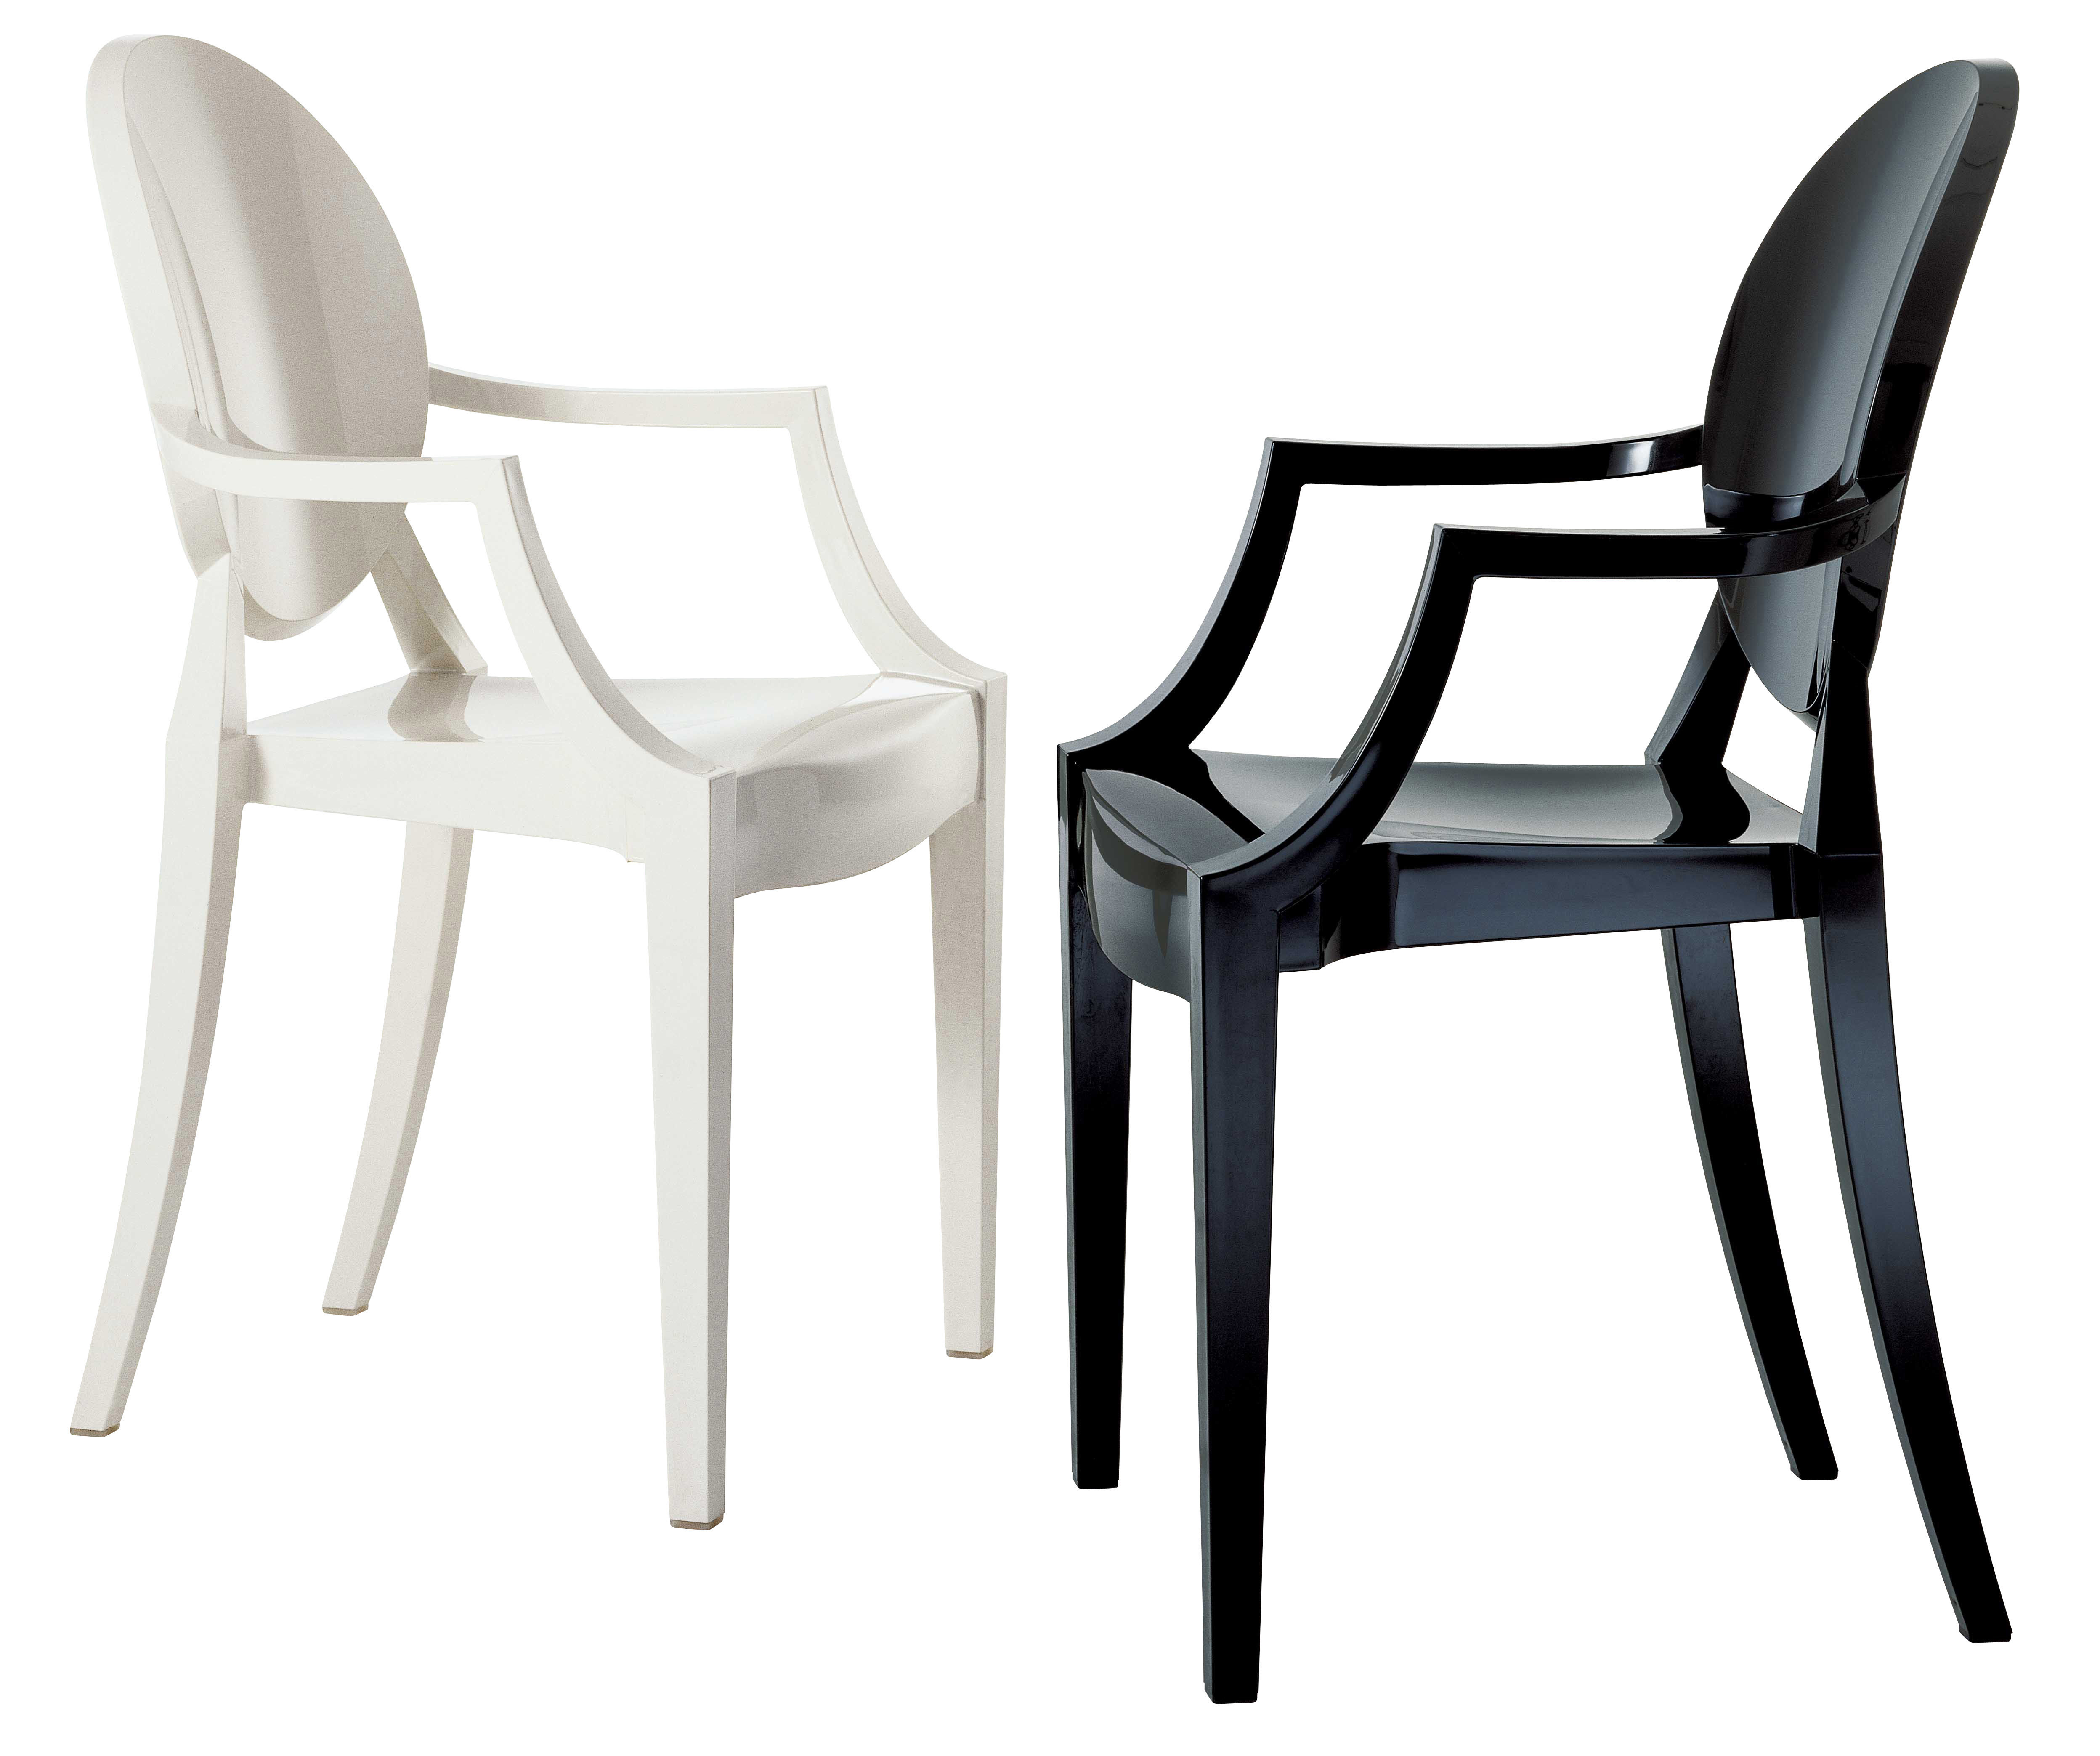 philippe starck ghost chair patio cushions big lots fauteuil empilable louis polycarbonate noir opaque